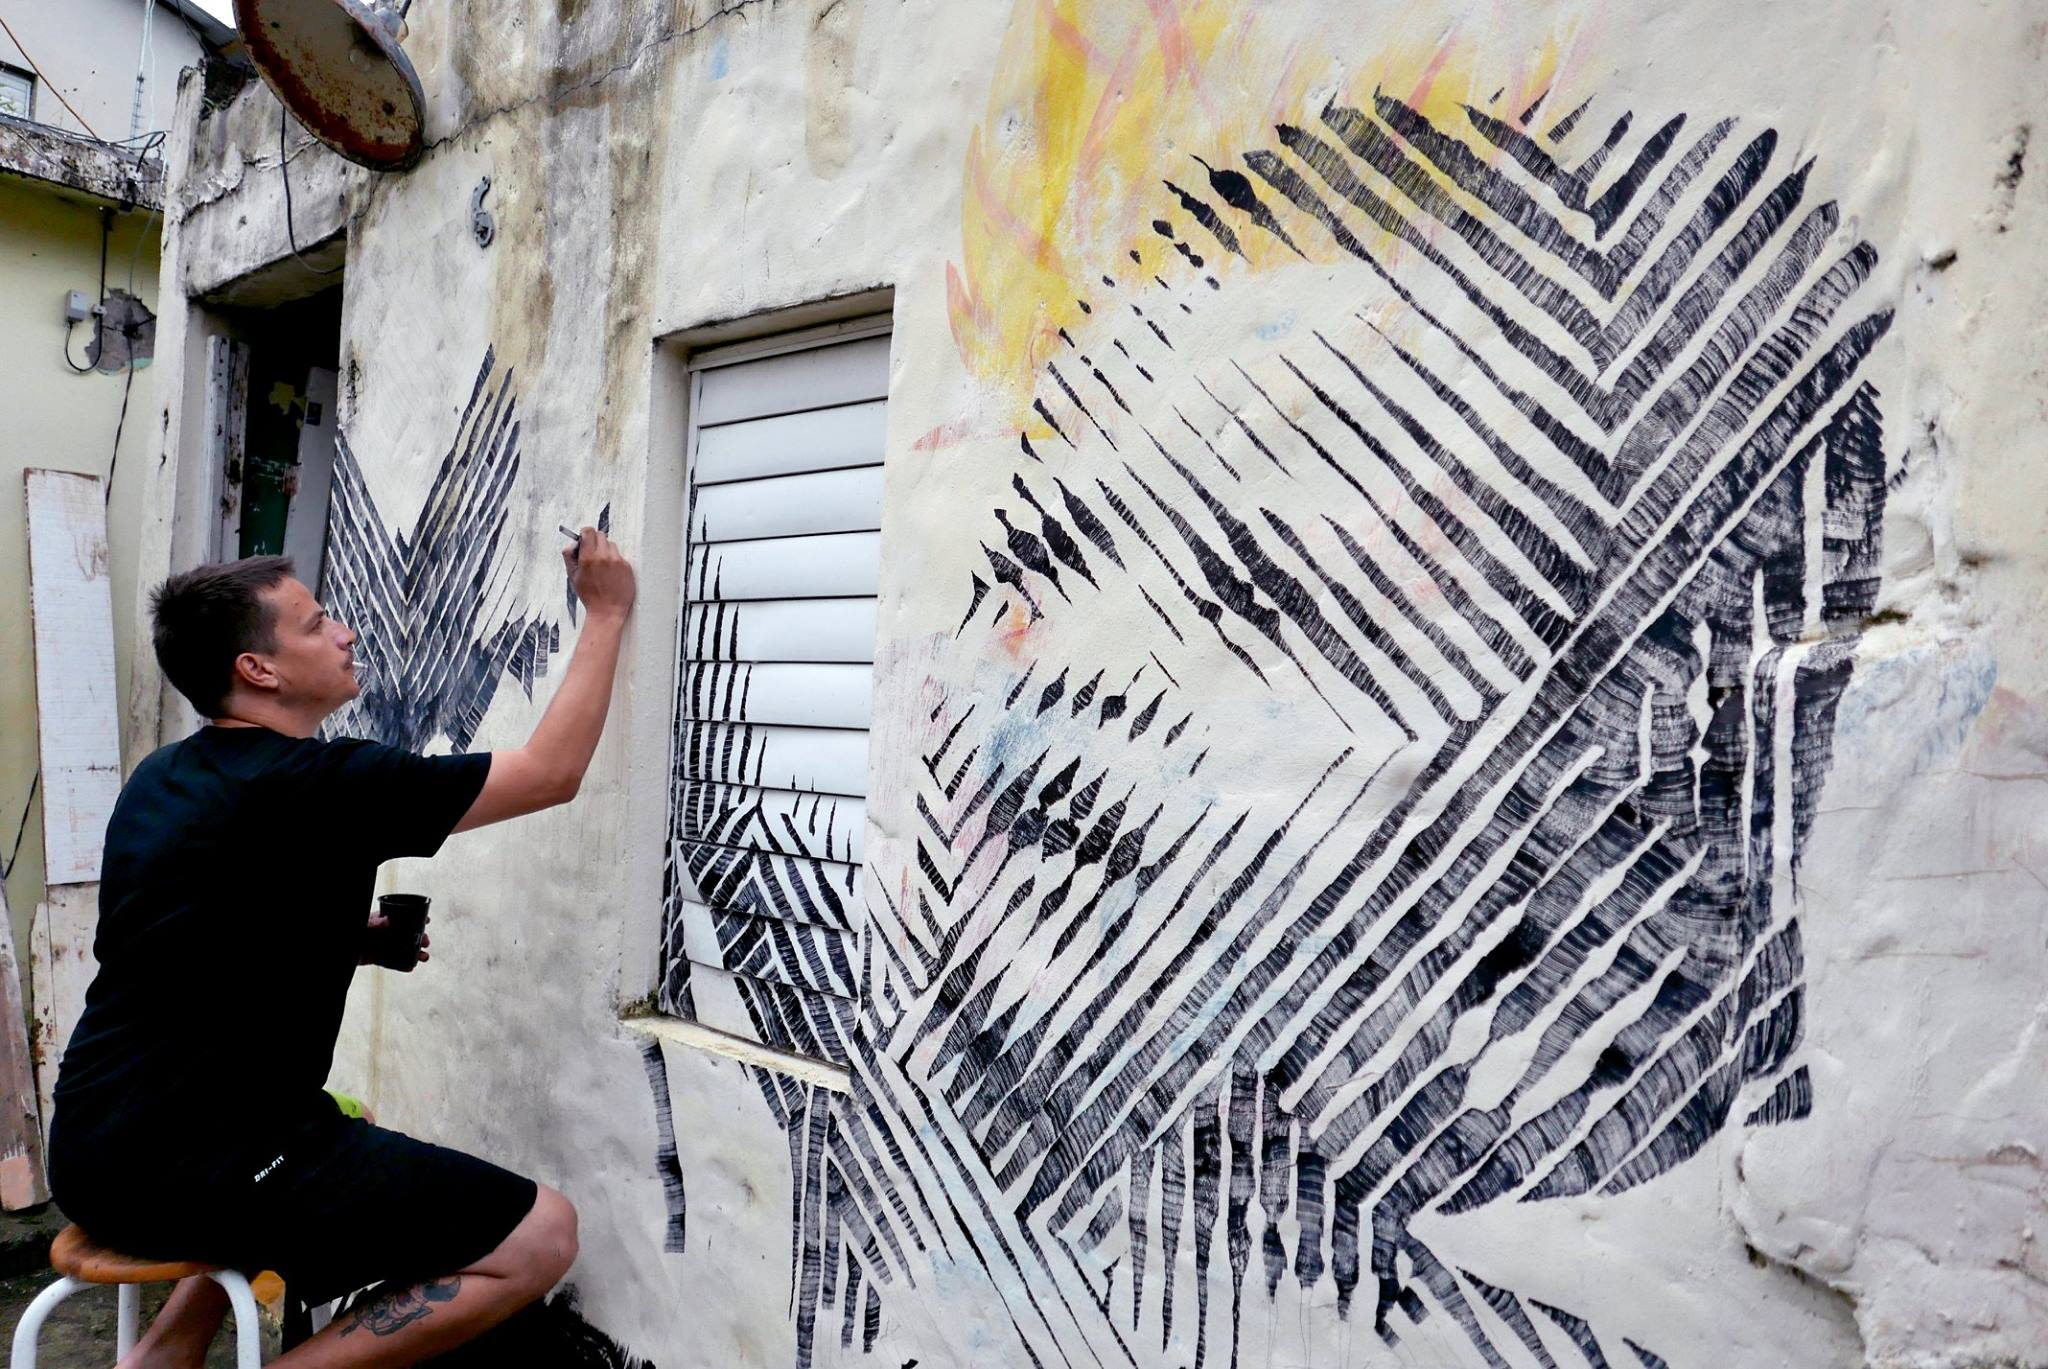 2alas-new-mural-for-artesano-project-00